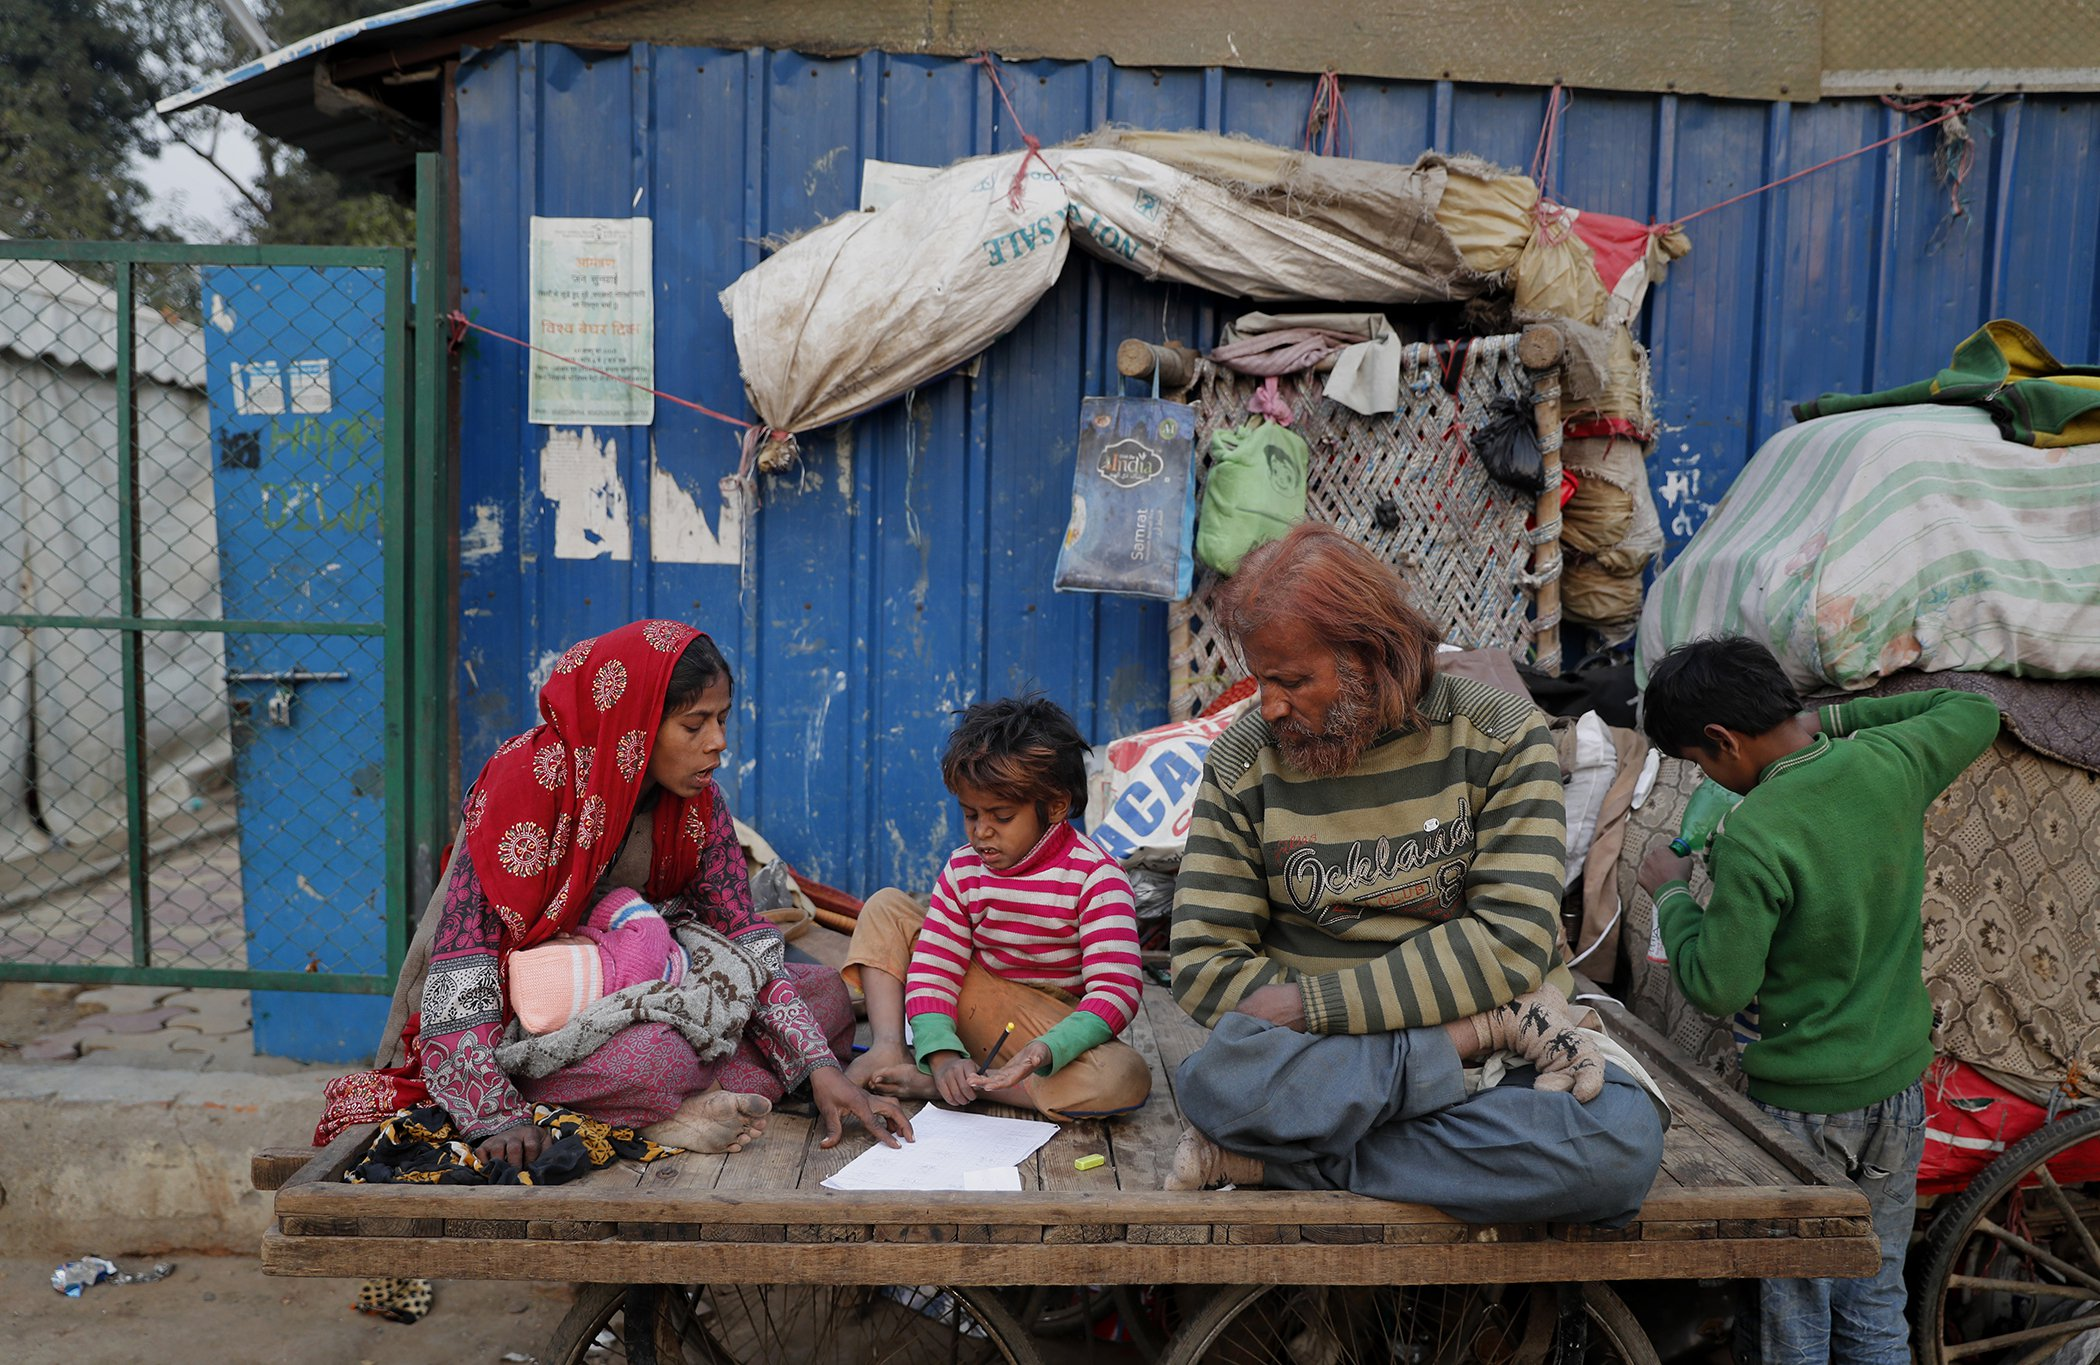 India-Daily-LIfe-Poverty.jpg